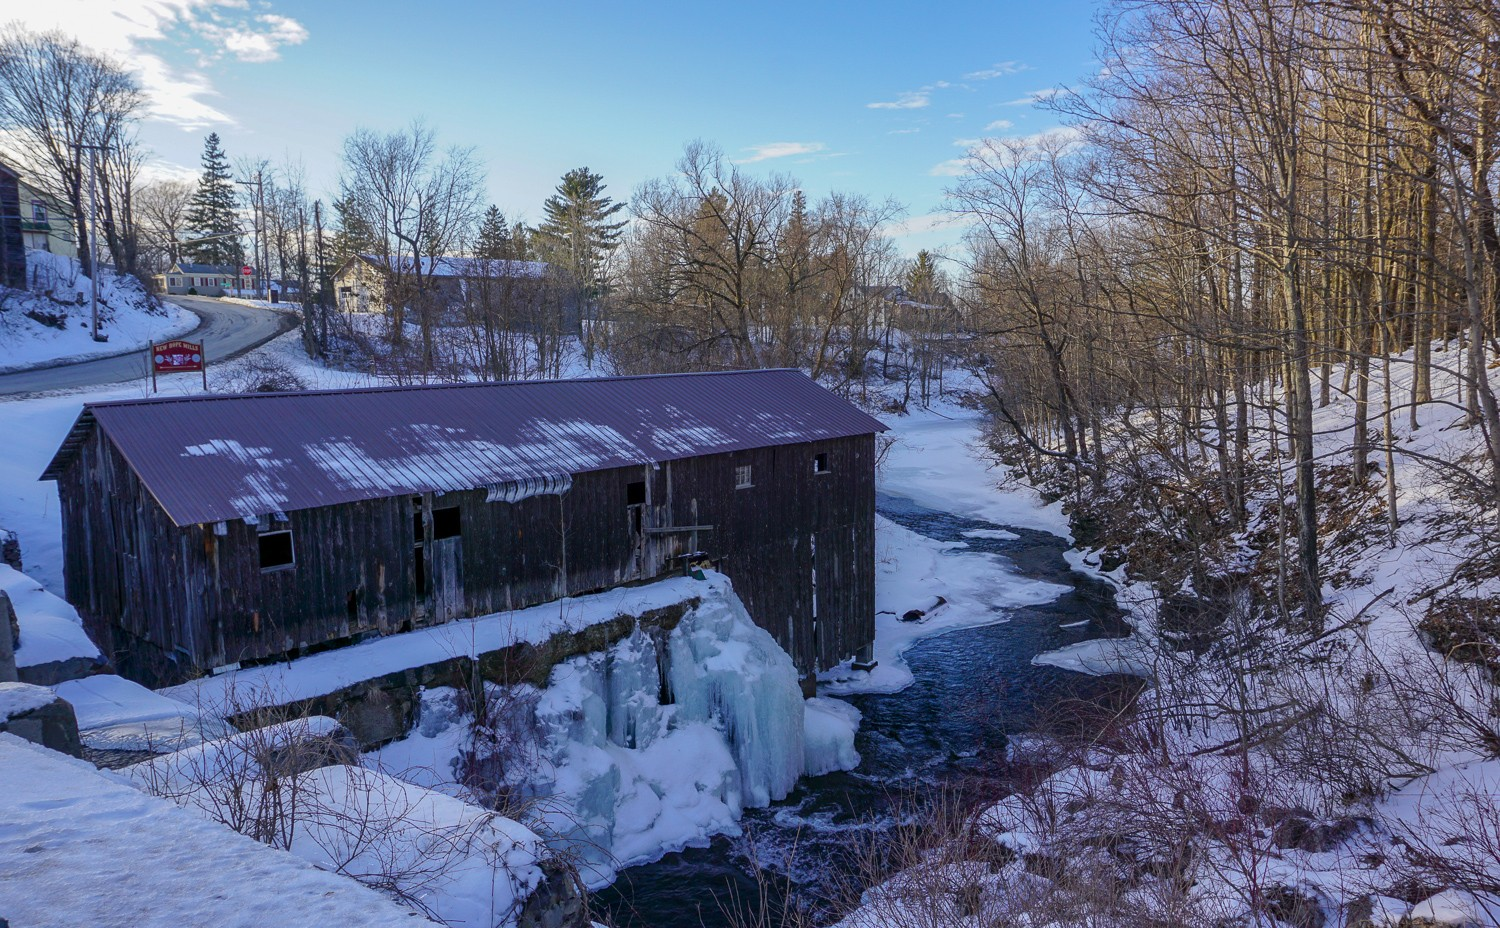 Cayuga County and The Towns You Don't Know - Featured Image